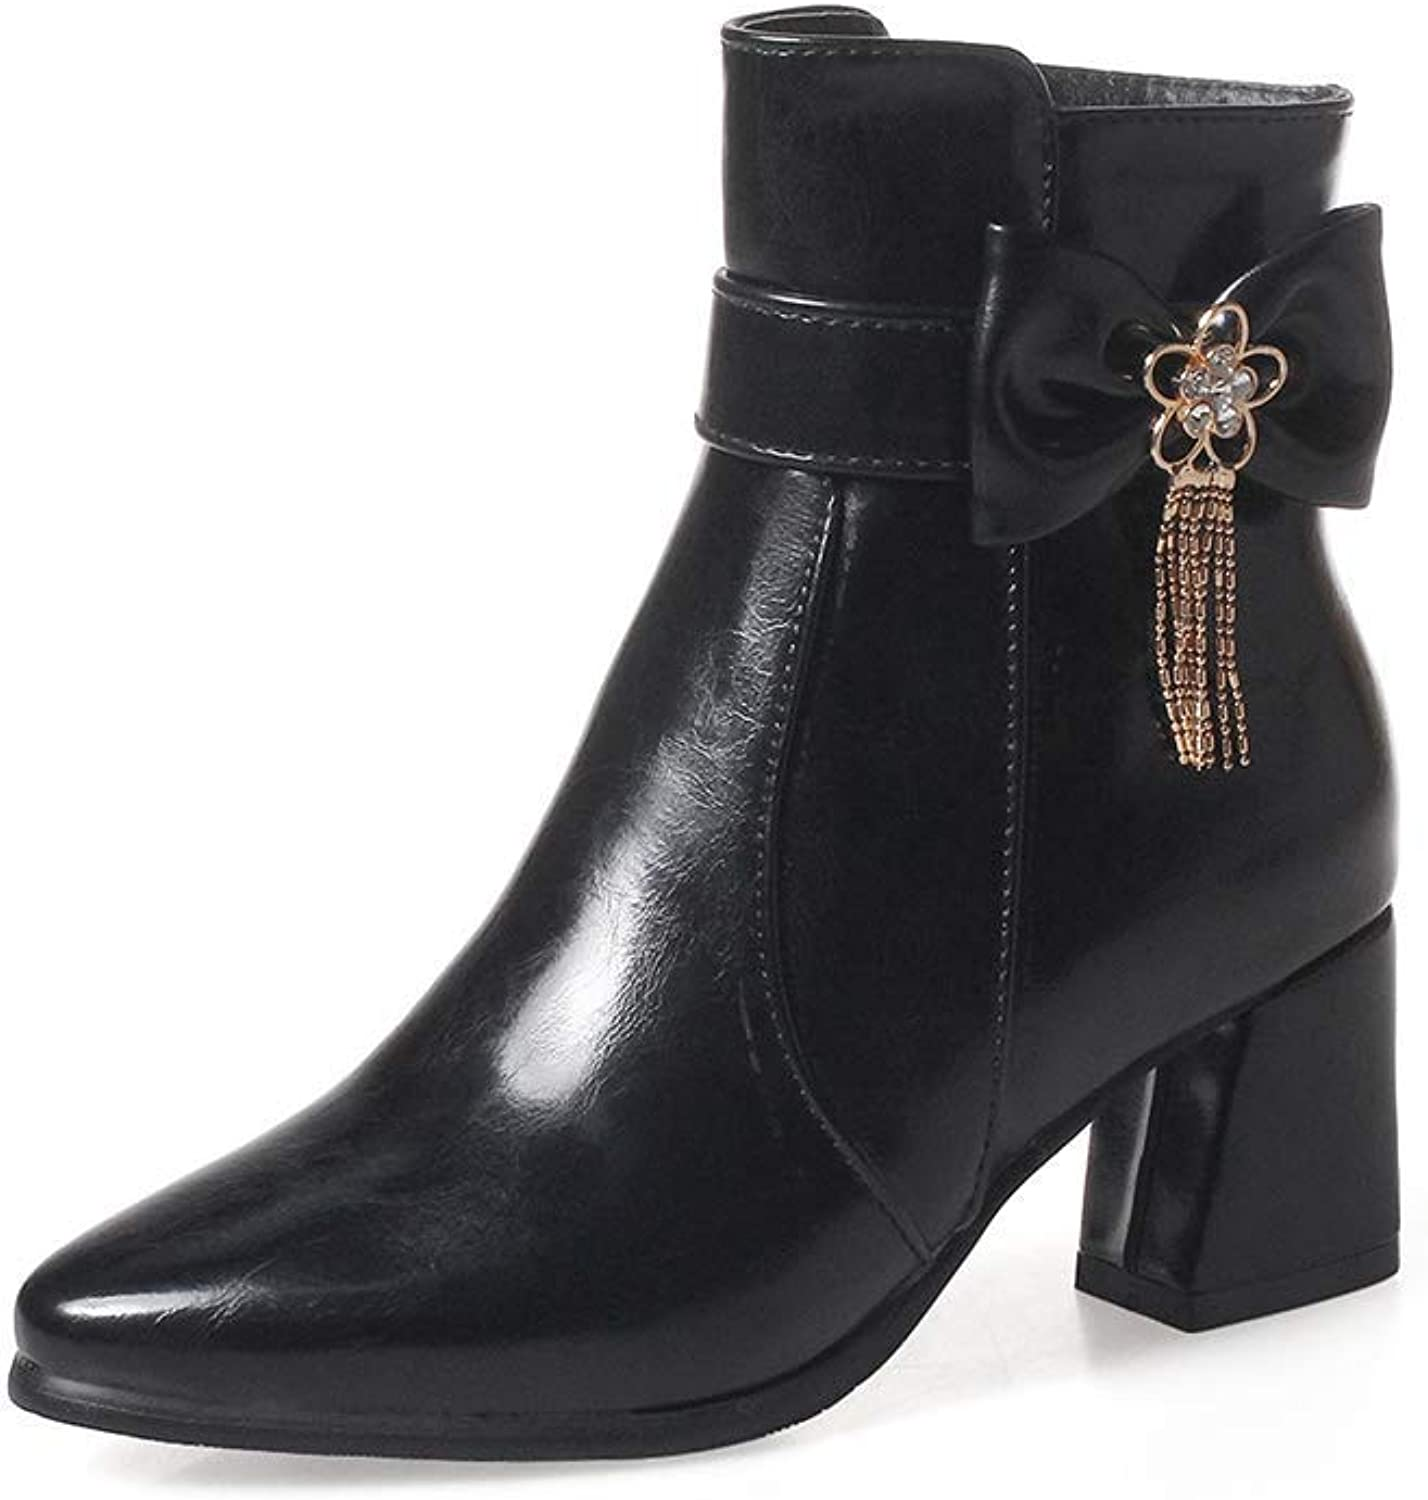 Webb Perkin Women Fashion Bowknot Martin Boots Side Zipper Chunky Heel Winter Booties Lady Pointed Toe Ankle Boots